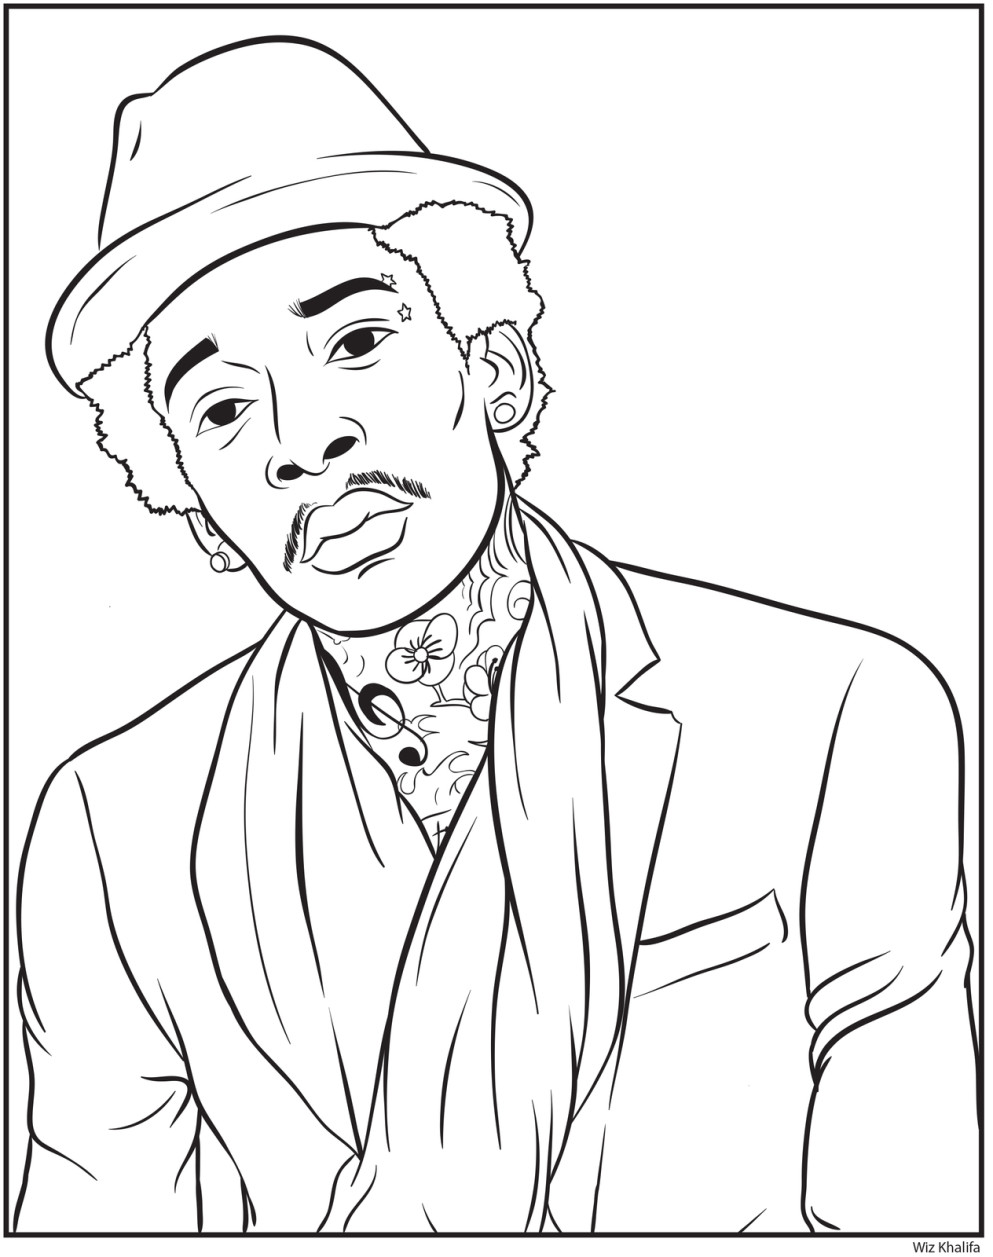 Free coloring pages of famous rappers for Rapper coloring pages